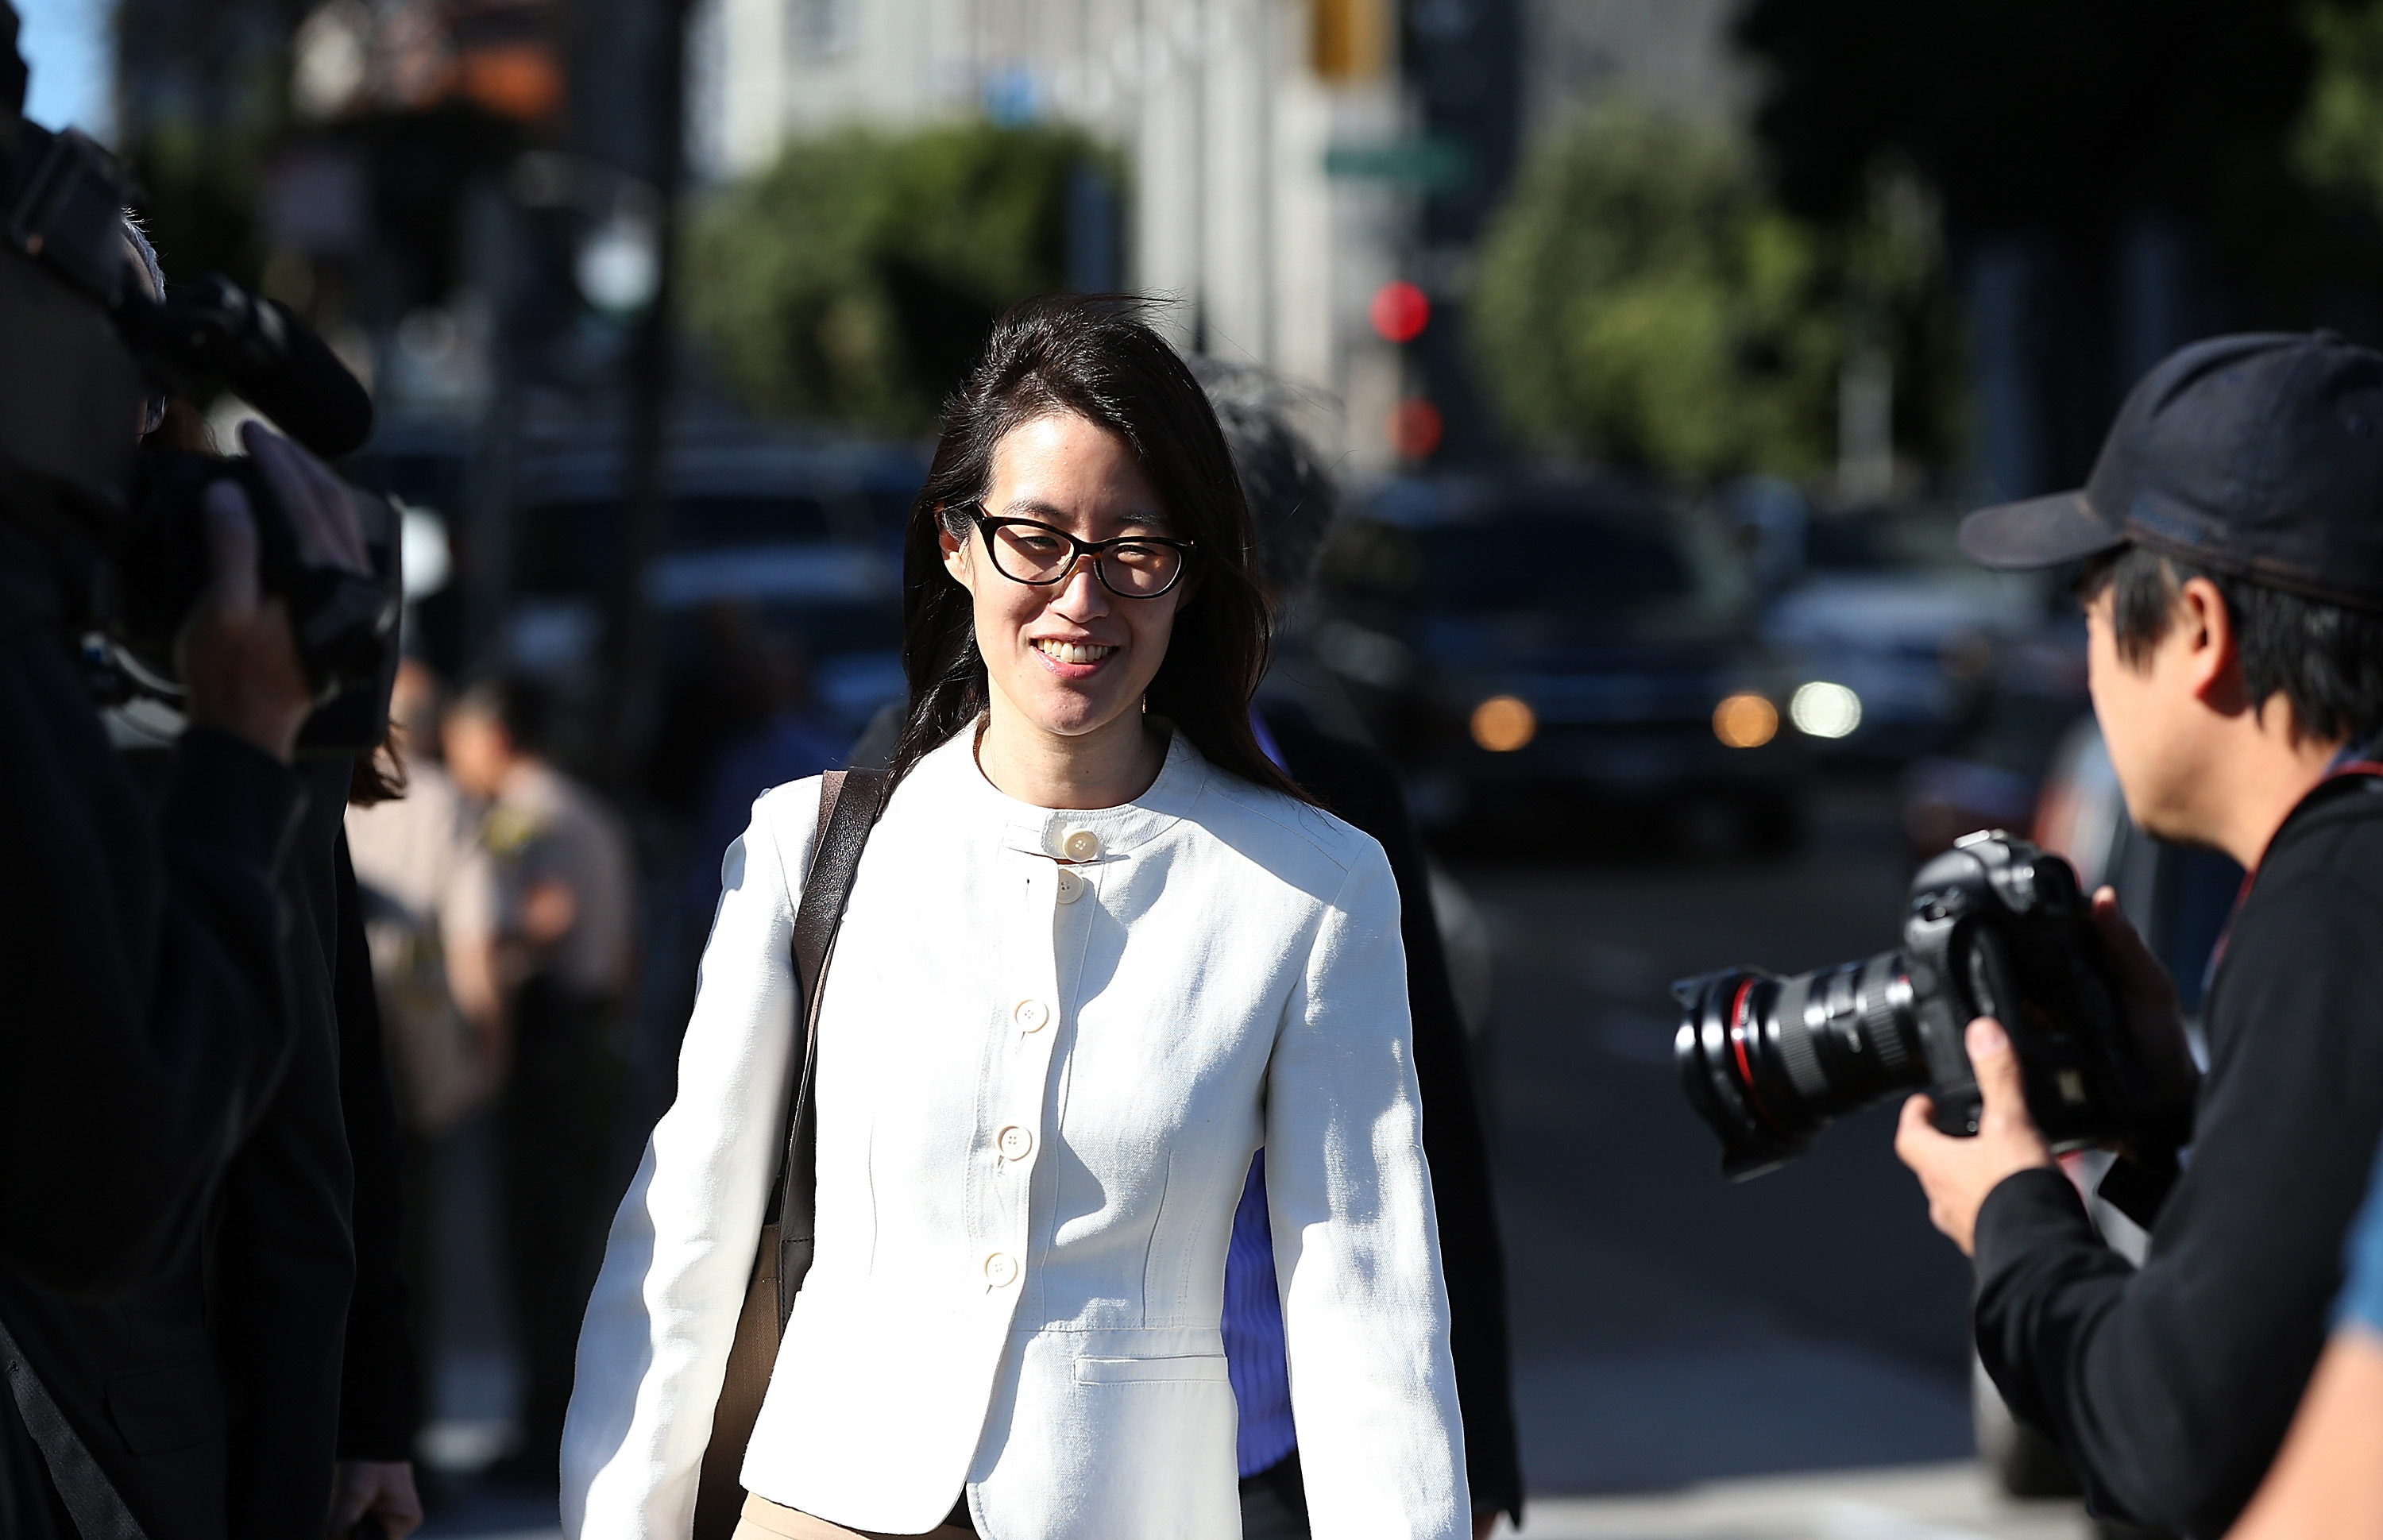 Ellen Pao leaves the courthouse after losing her sexual-discrimination case against Kleiner Perkins Caulfield & Byers. The case wrapped up on a chaotic note as jurors were asked to resume their deliberations after the initial verdict announcement.